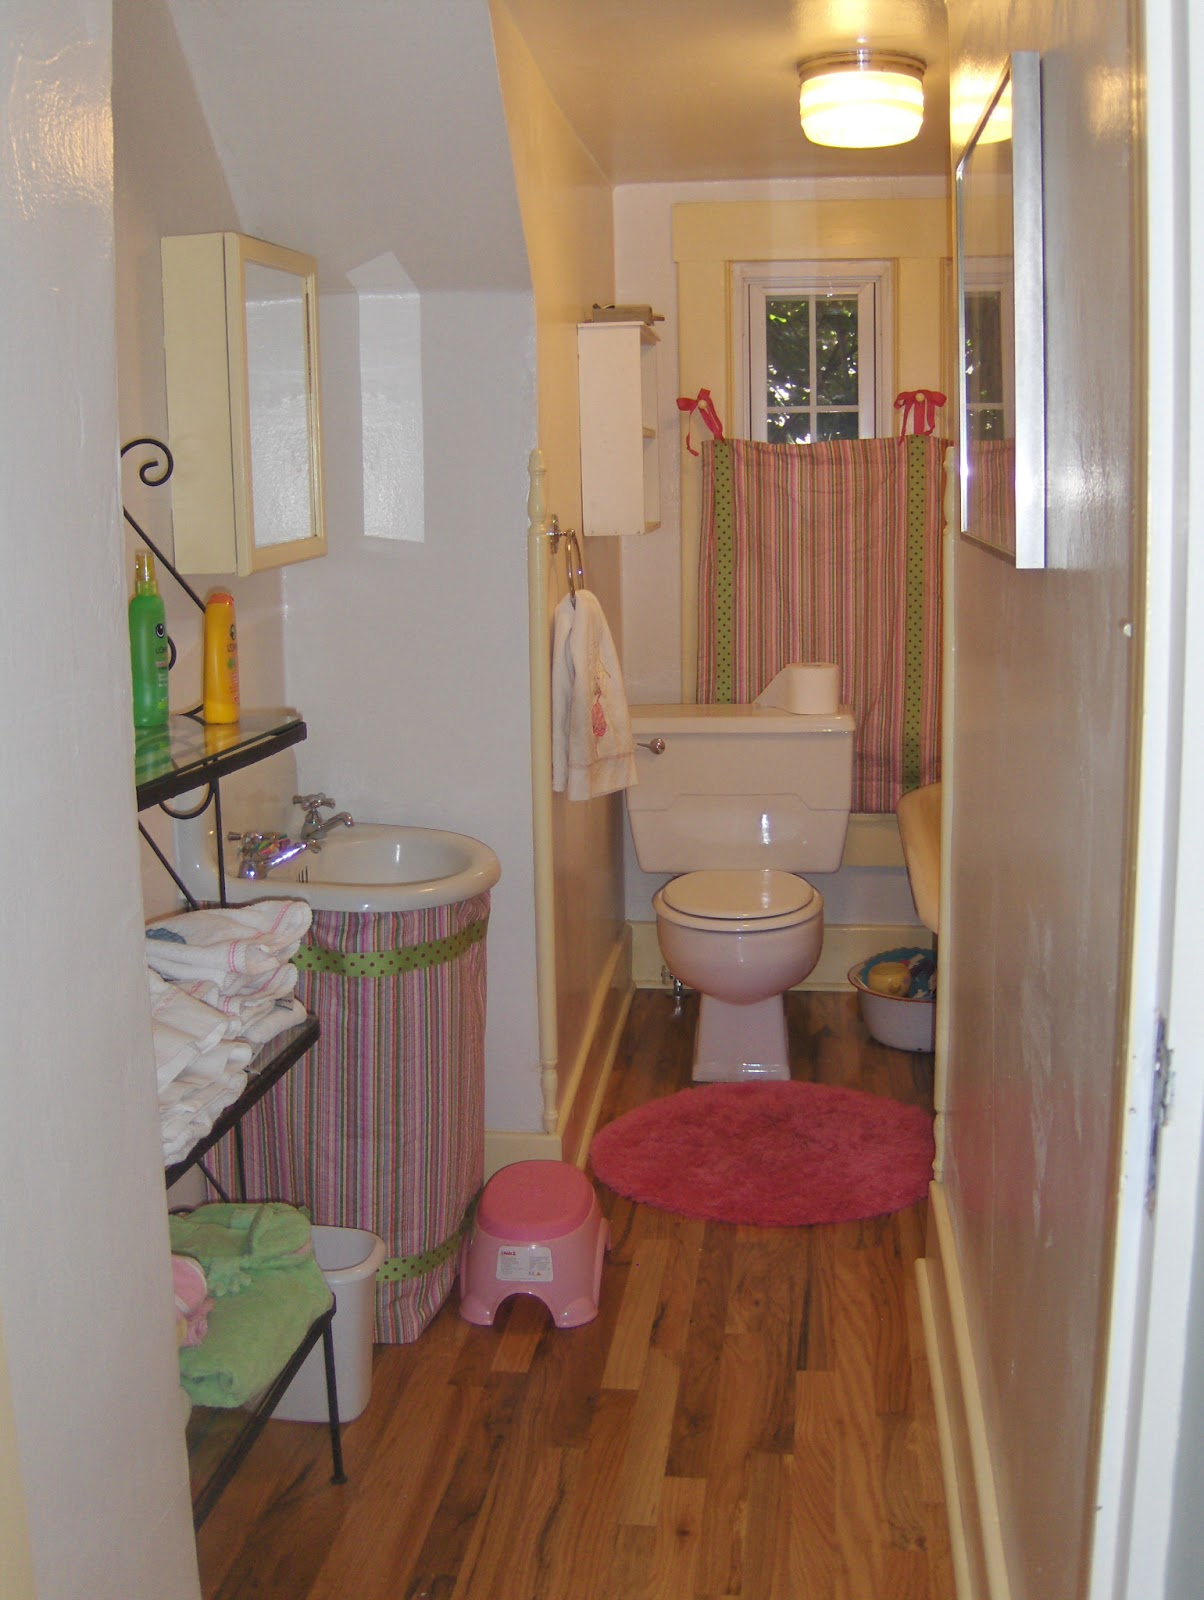 A marmie life very small bathroom remodel for Small bathroom remodel